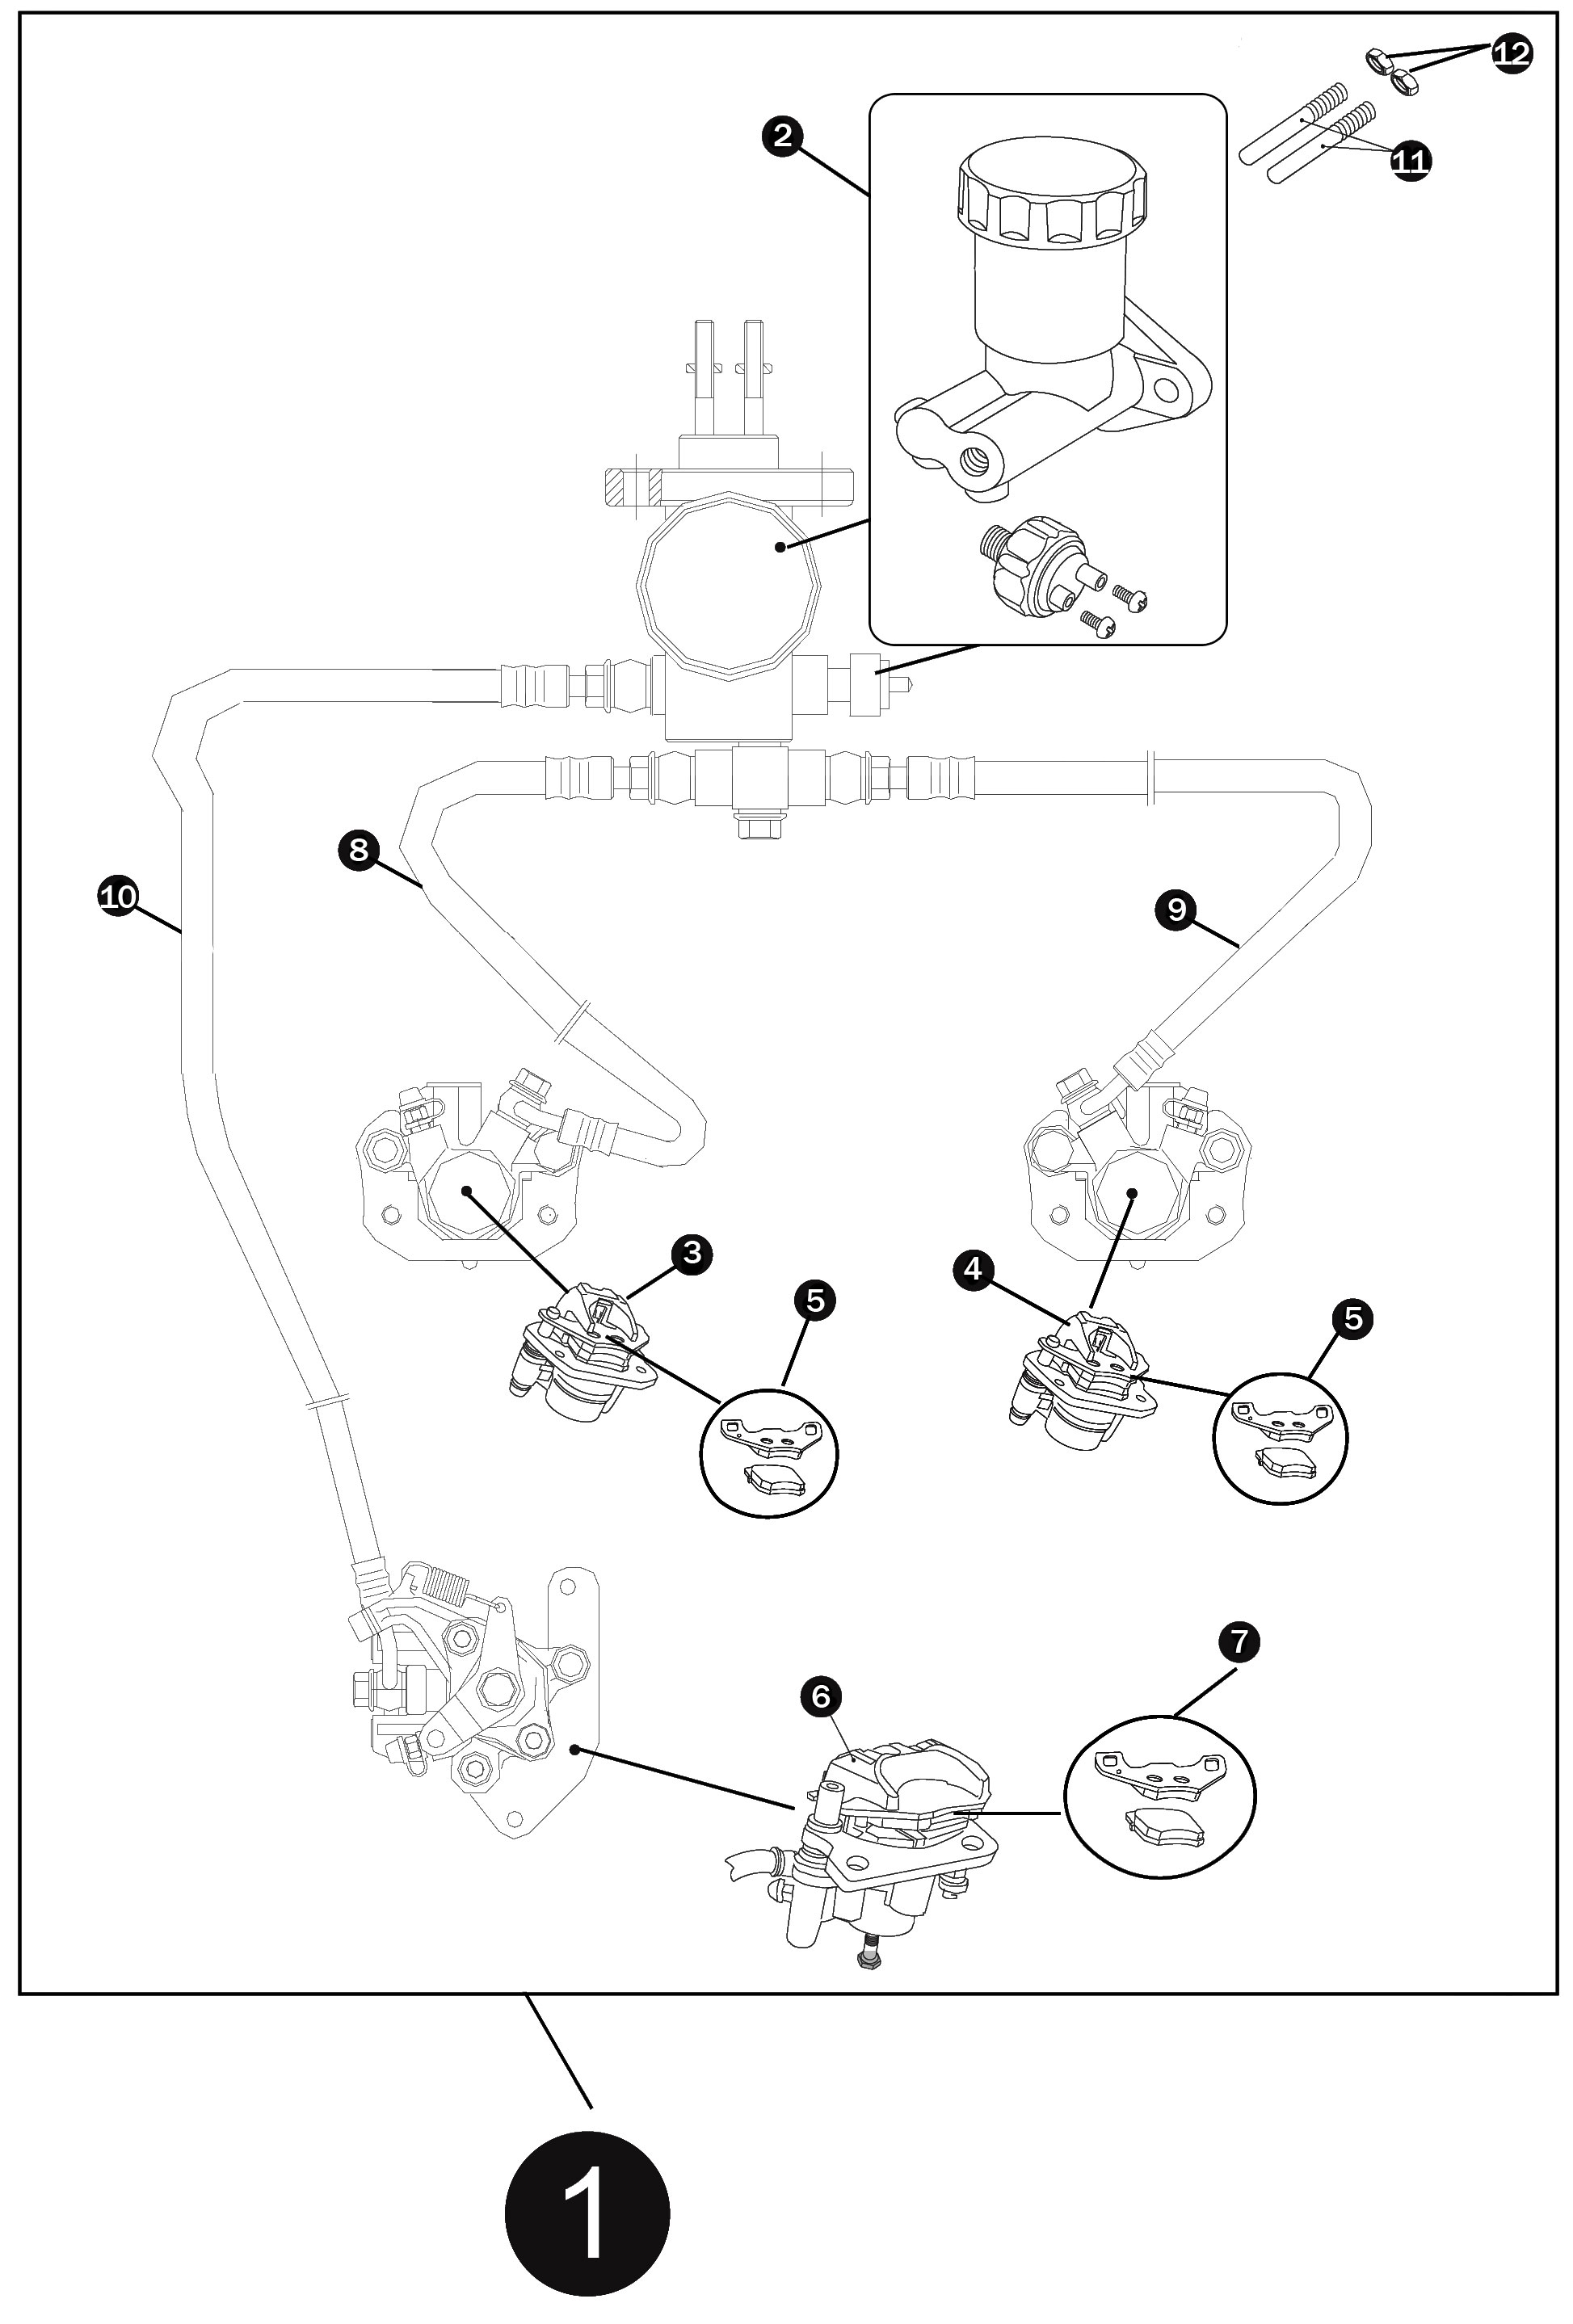 Brake Caliper Parts    Diagram     Reading industrial    wiring    diagrams